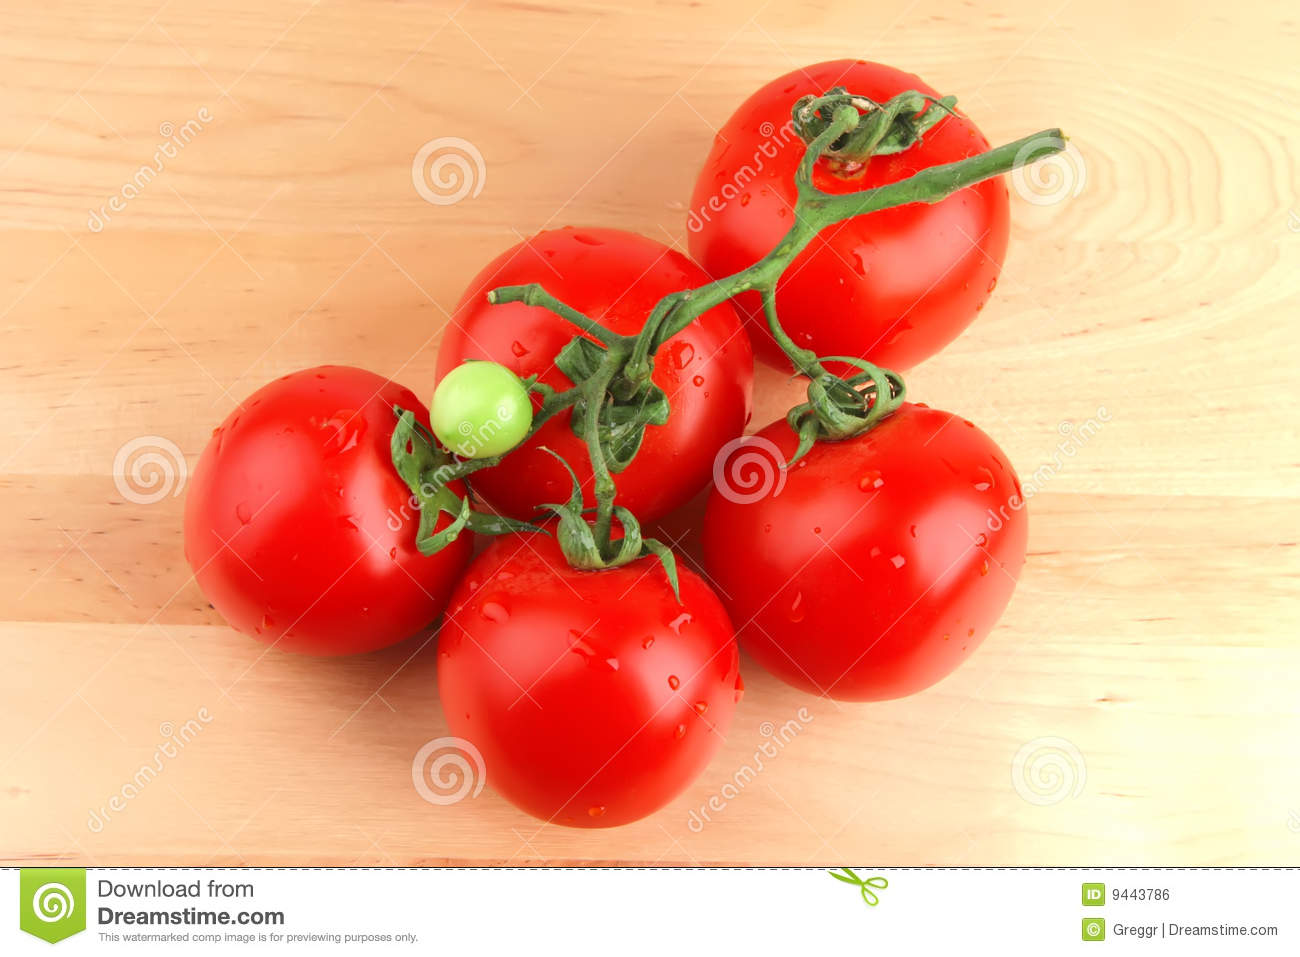 Tomato on wood stock photo image of crop growth bright